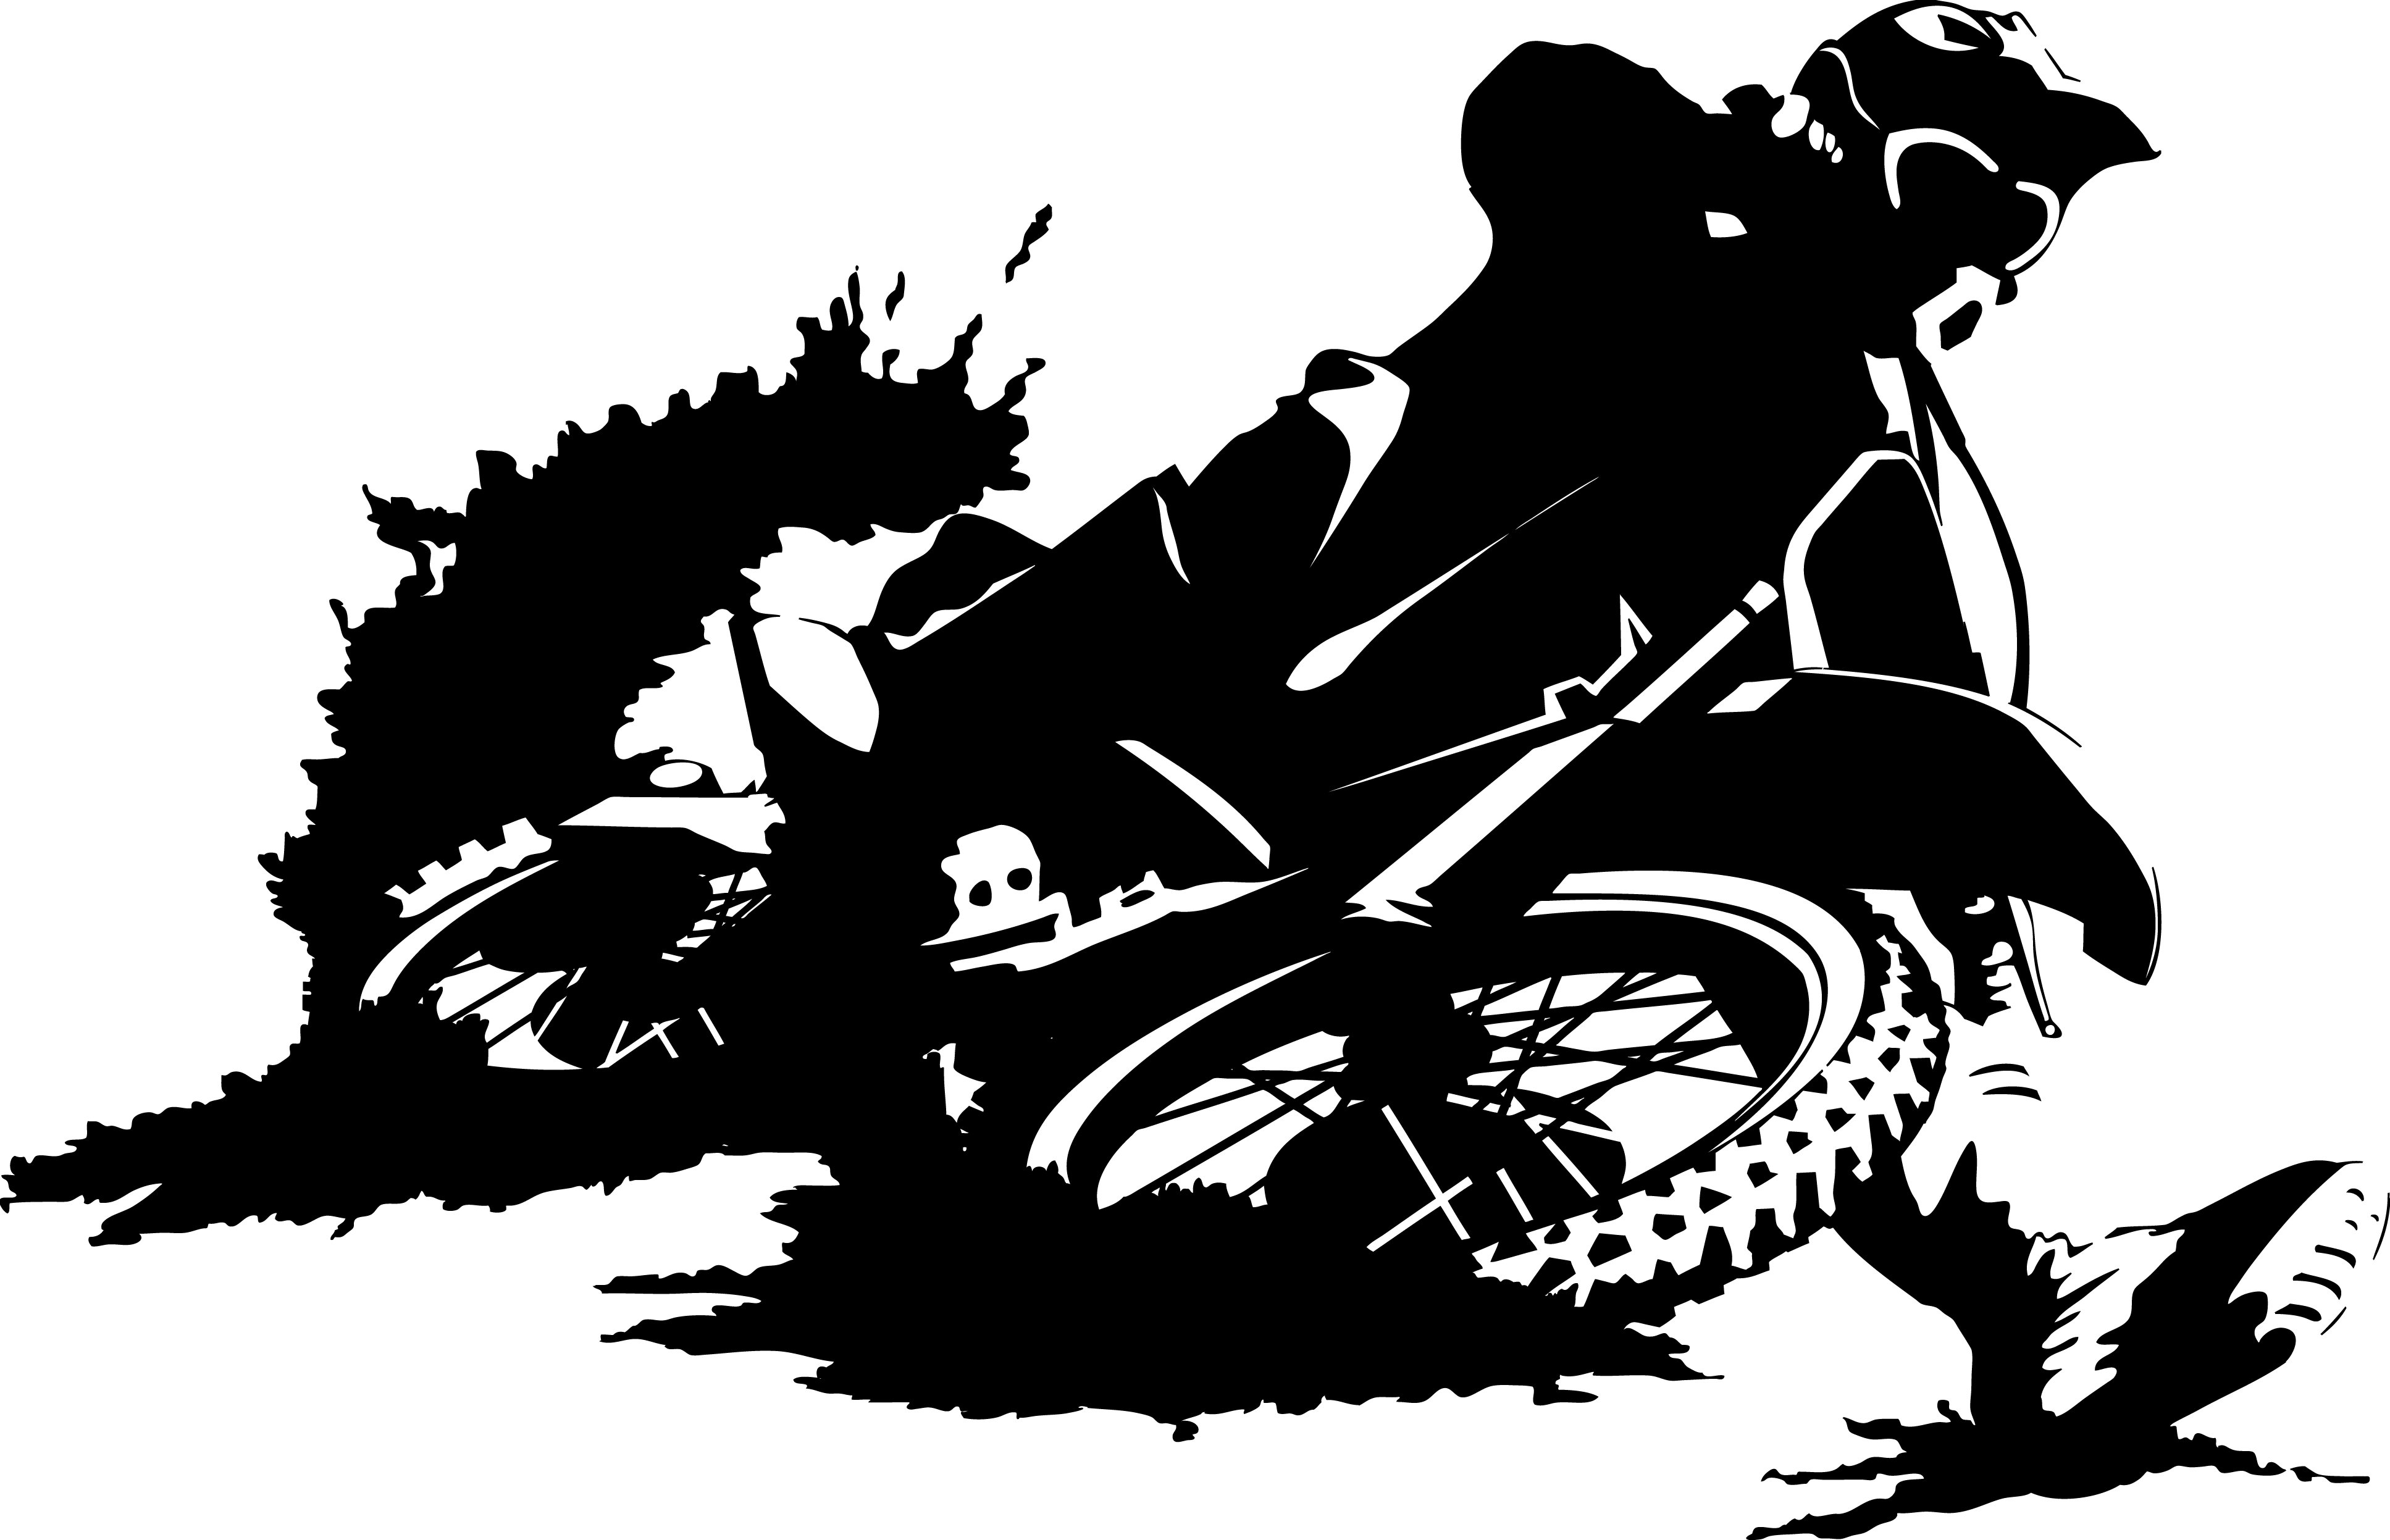 Dirtbike motocross moto bike extreme motorbike dirt (1) wallpaper ...